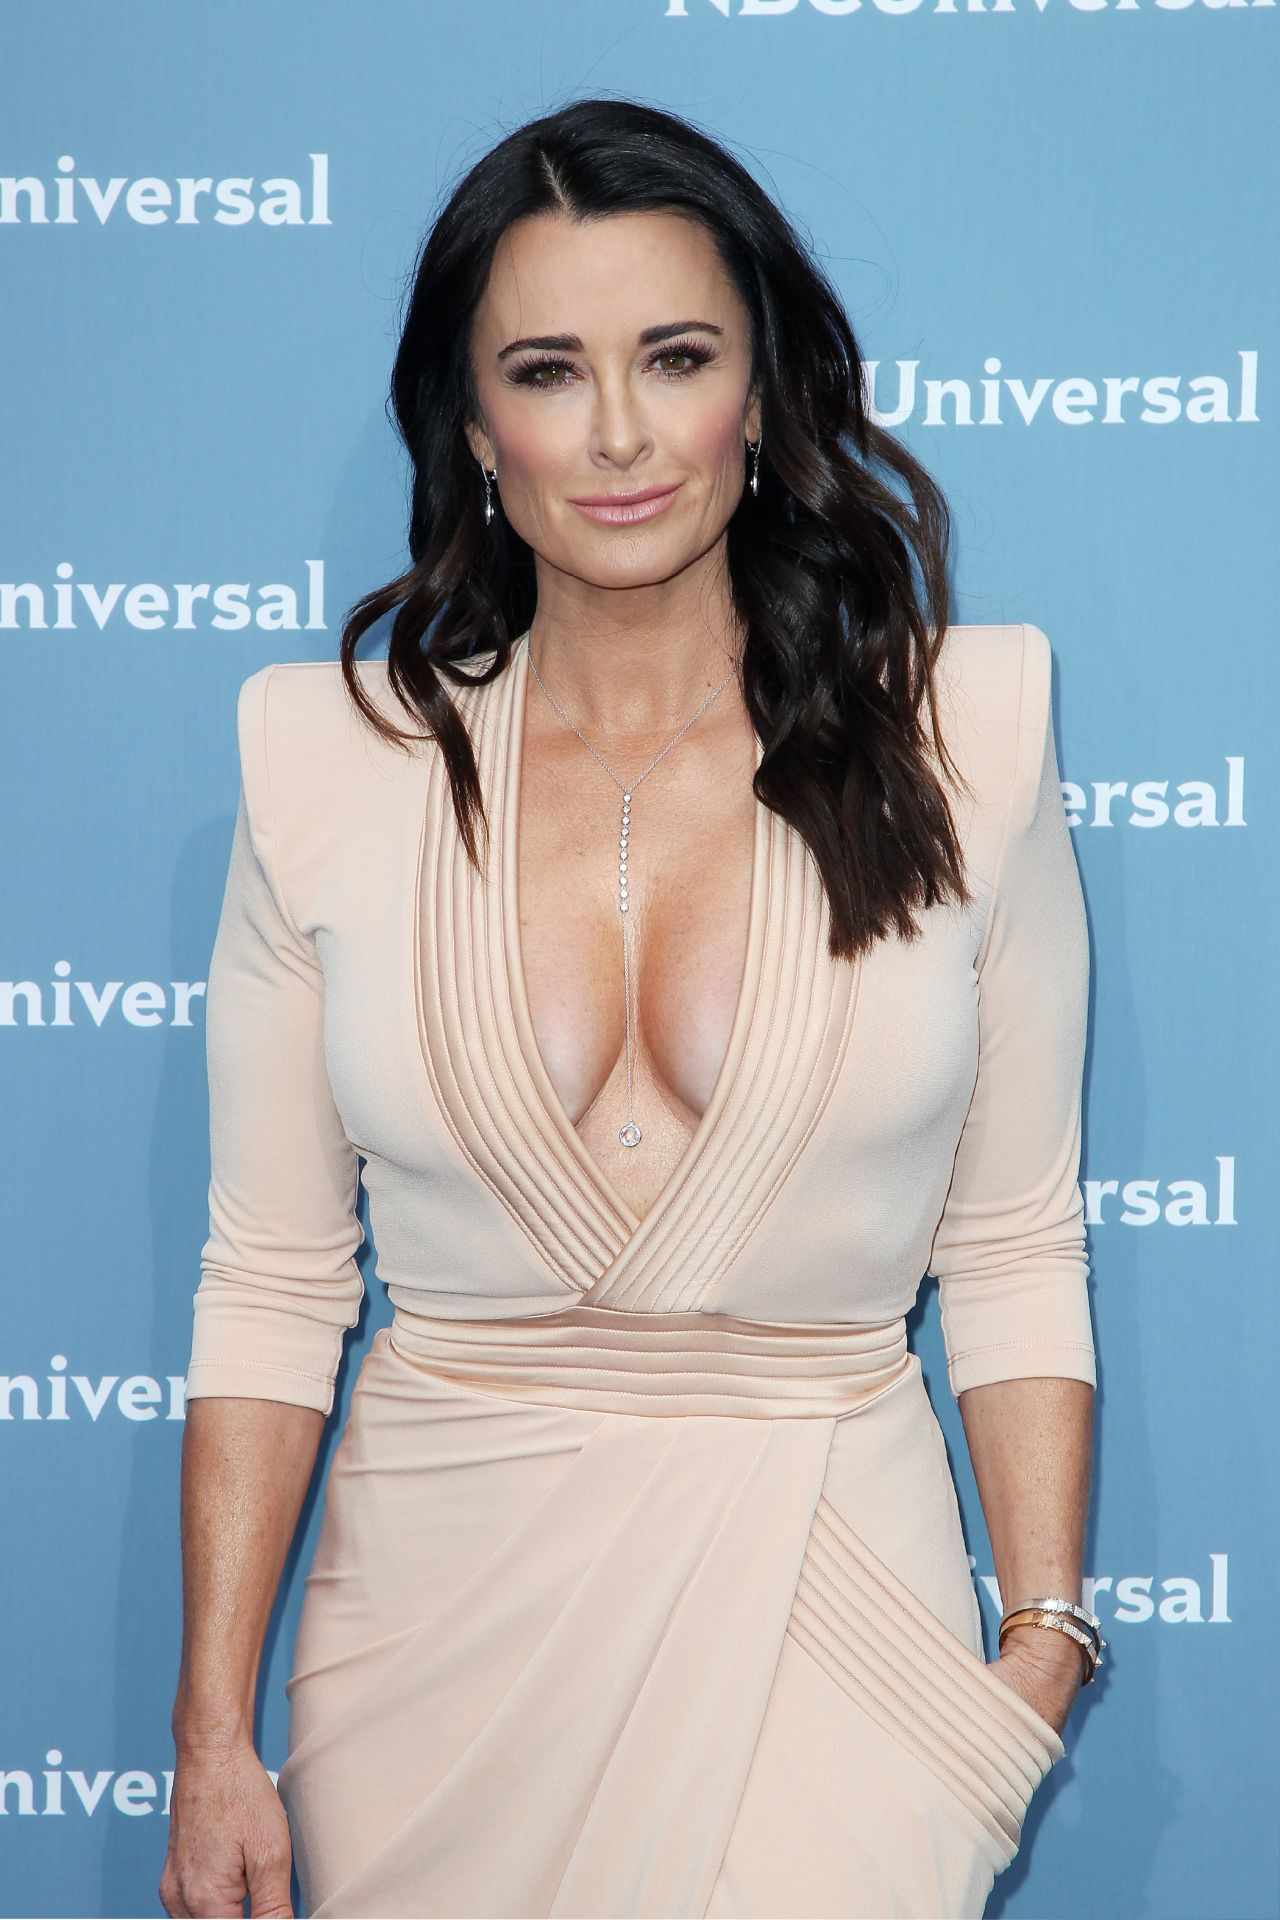 Kyle Richards Nbcuniversal Upfront Presentation In New